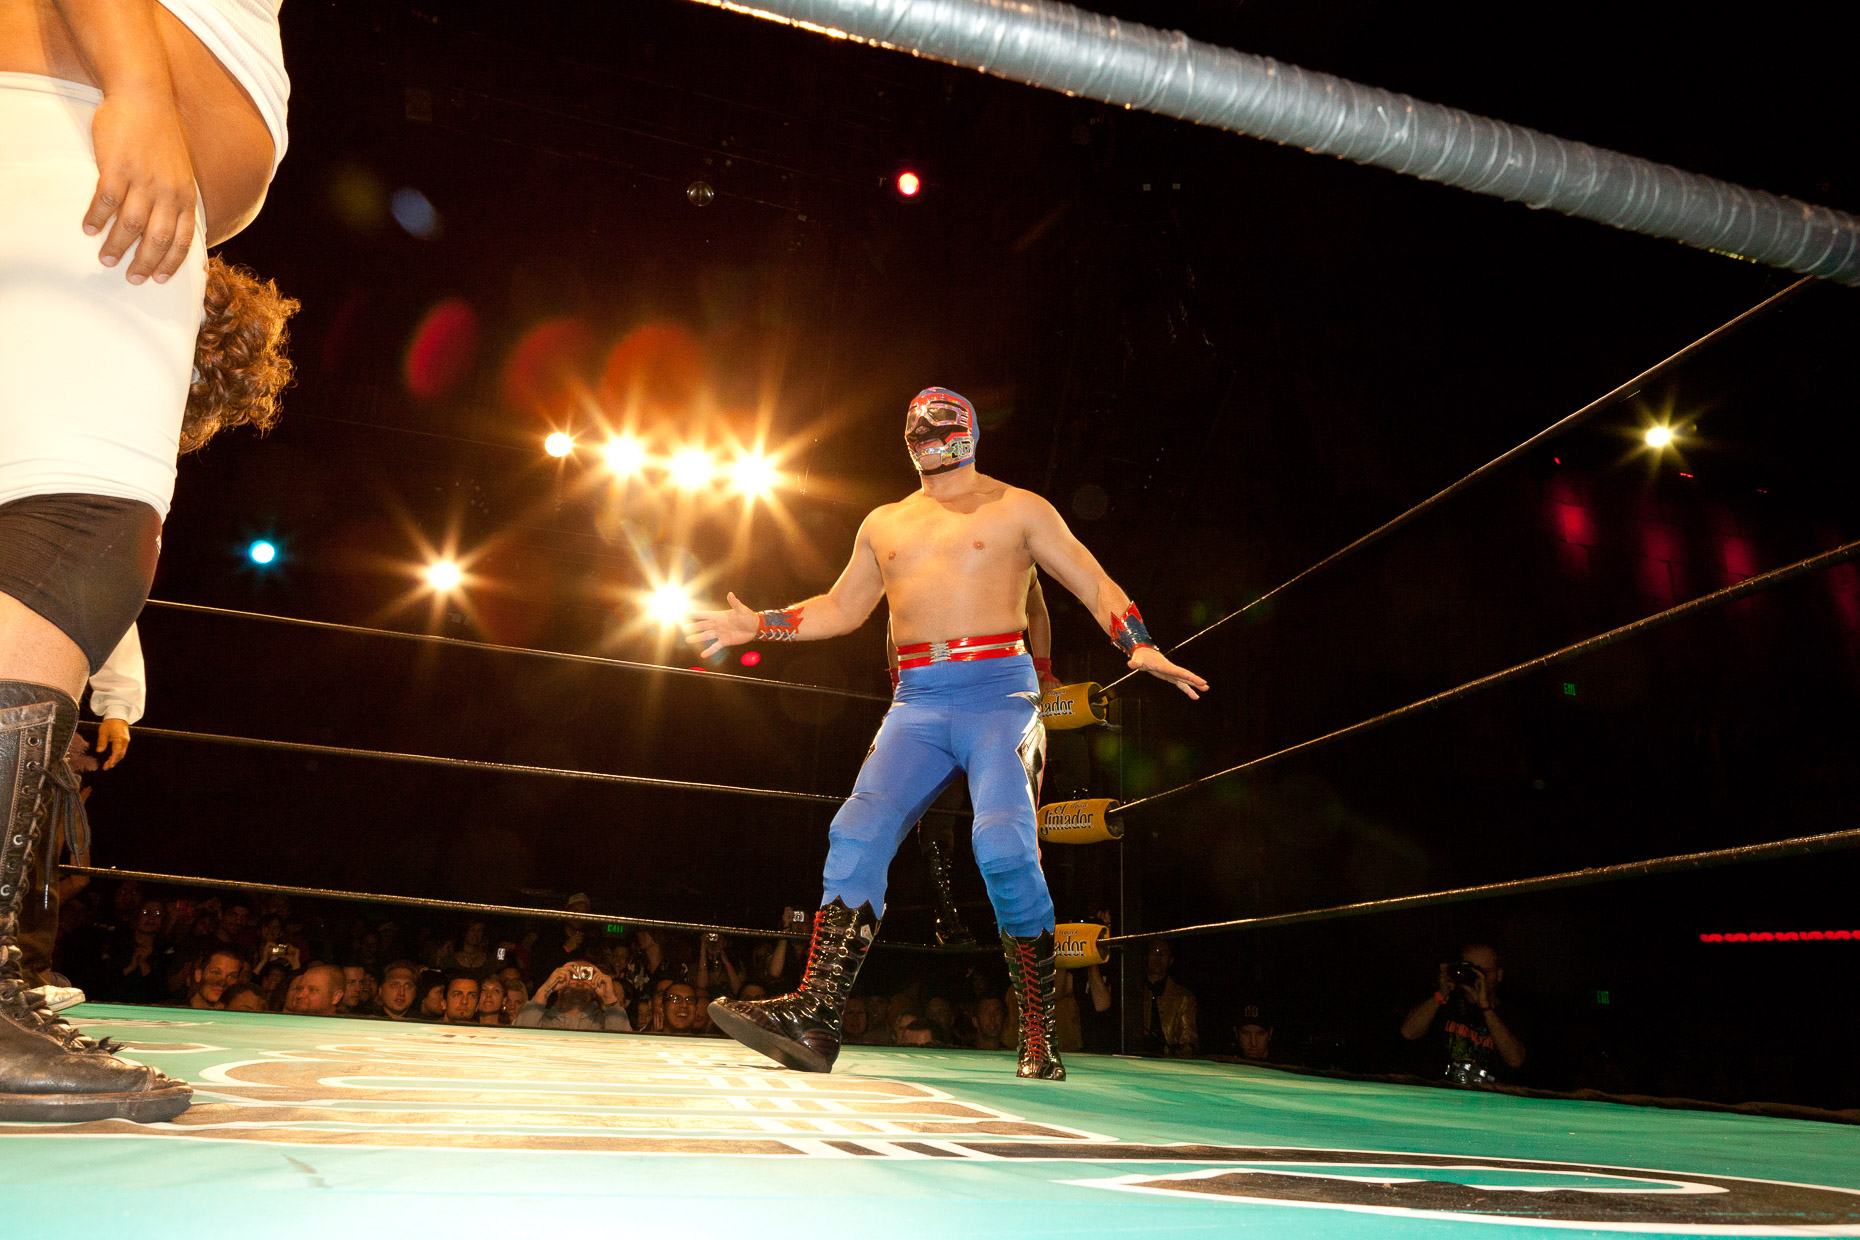 Lucha Vavoom Mexican wrestling and burlesque show in Los Angeles by David Zaitz, wrestler in ring